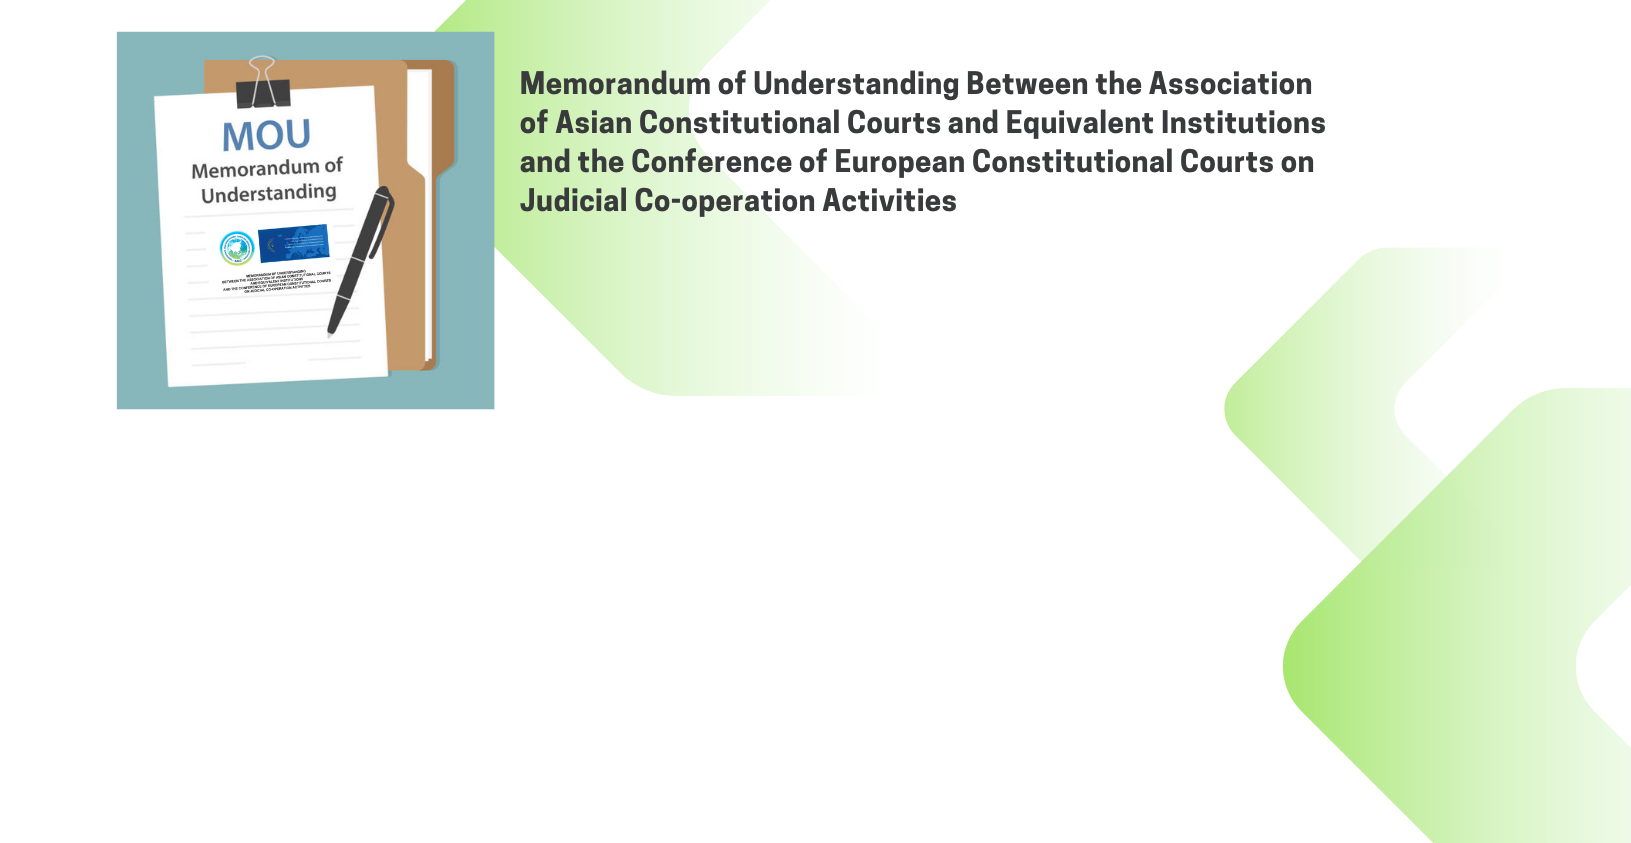 Memorandum of Understanding Between the AACC and the Conference of European Constitutional Courts on Judicial Co-operation Activities